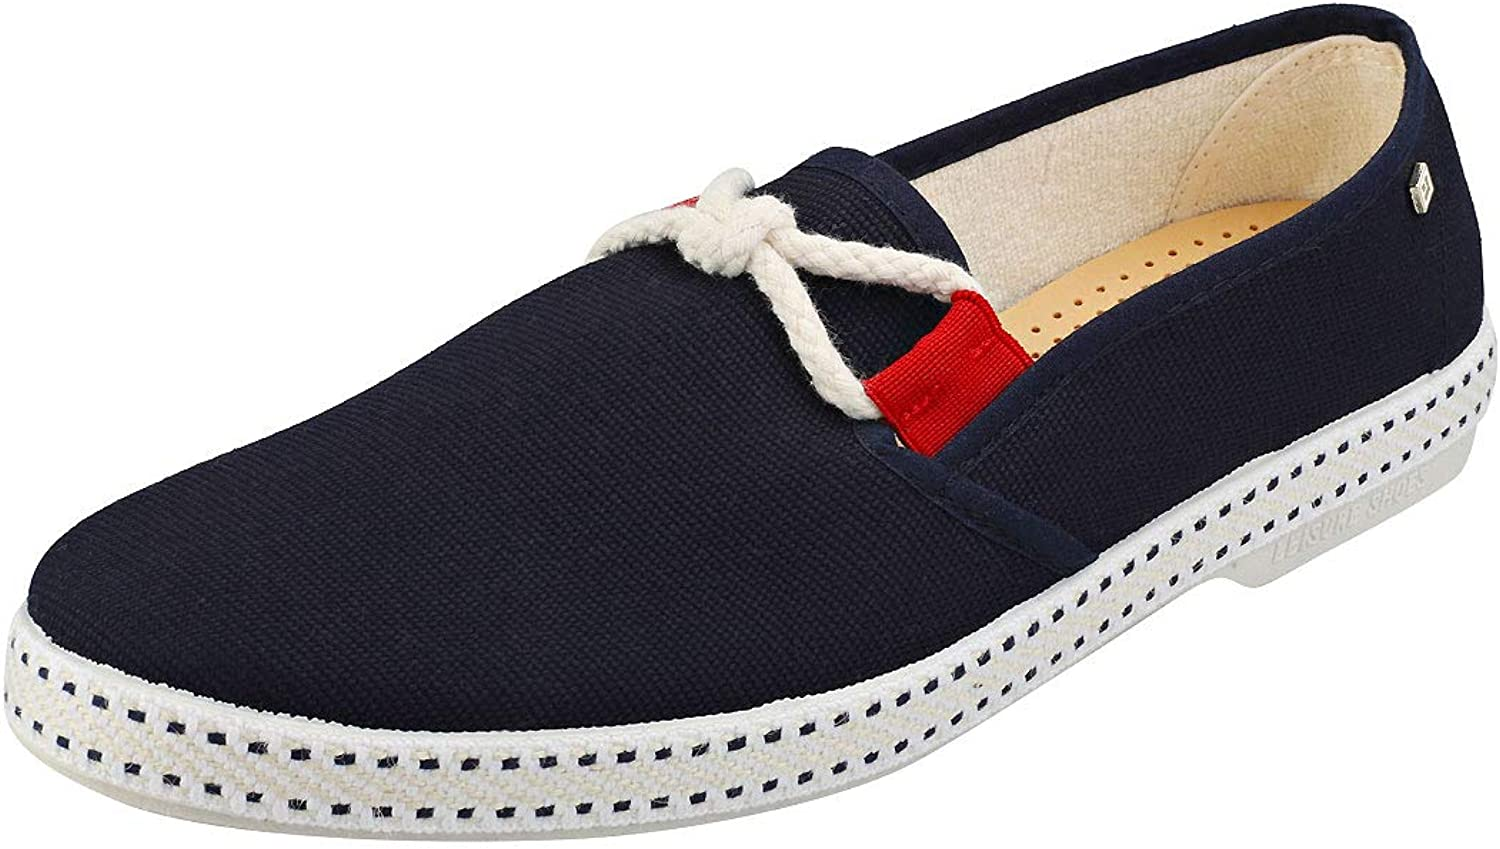 Rivieras Abordage CaBestean Mens Espadrille shoes